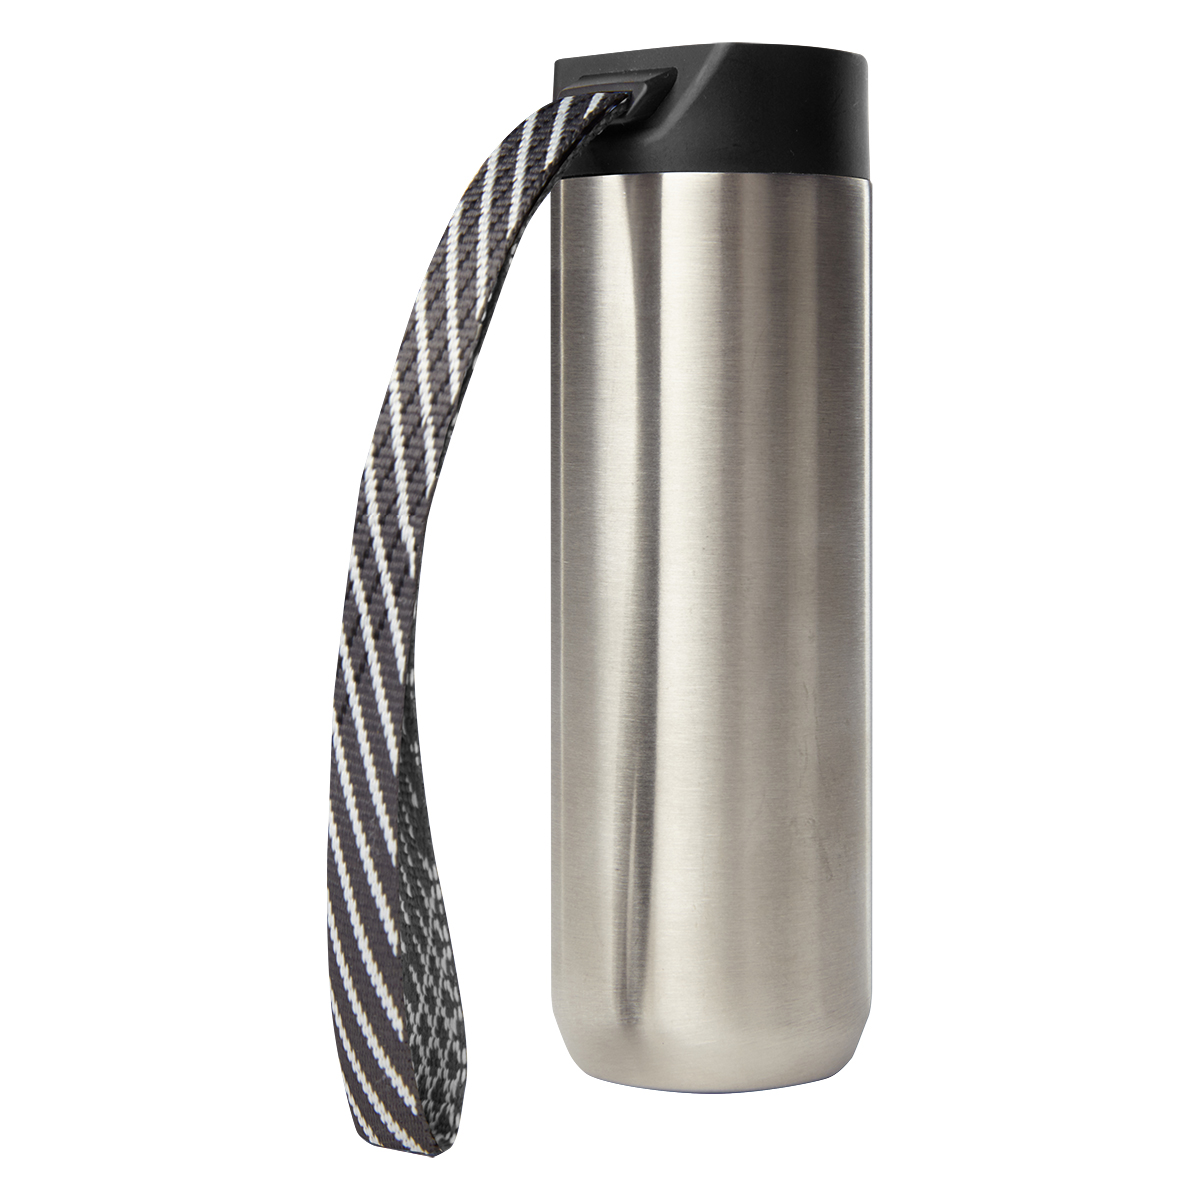 3 Oz. Stainless Steel Tumbler